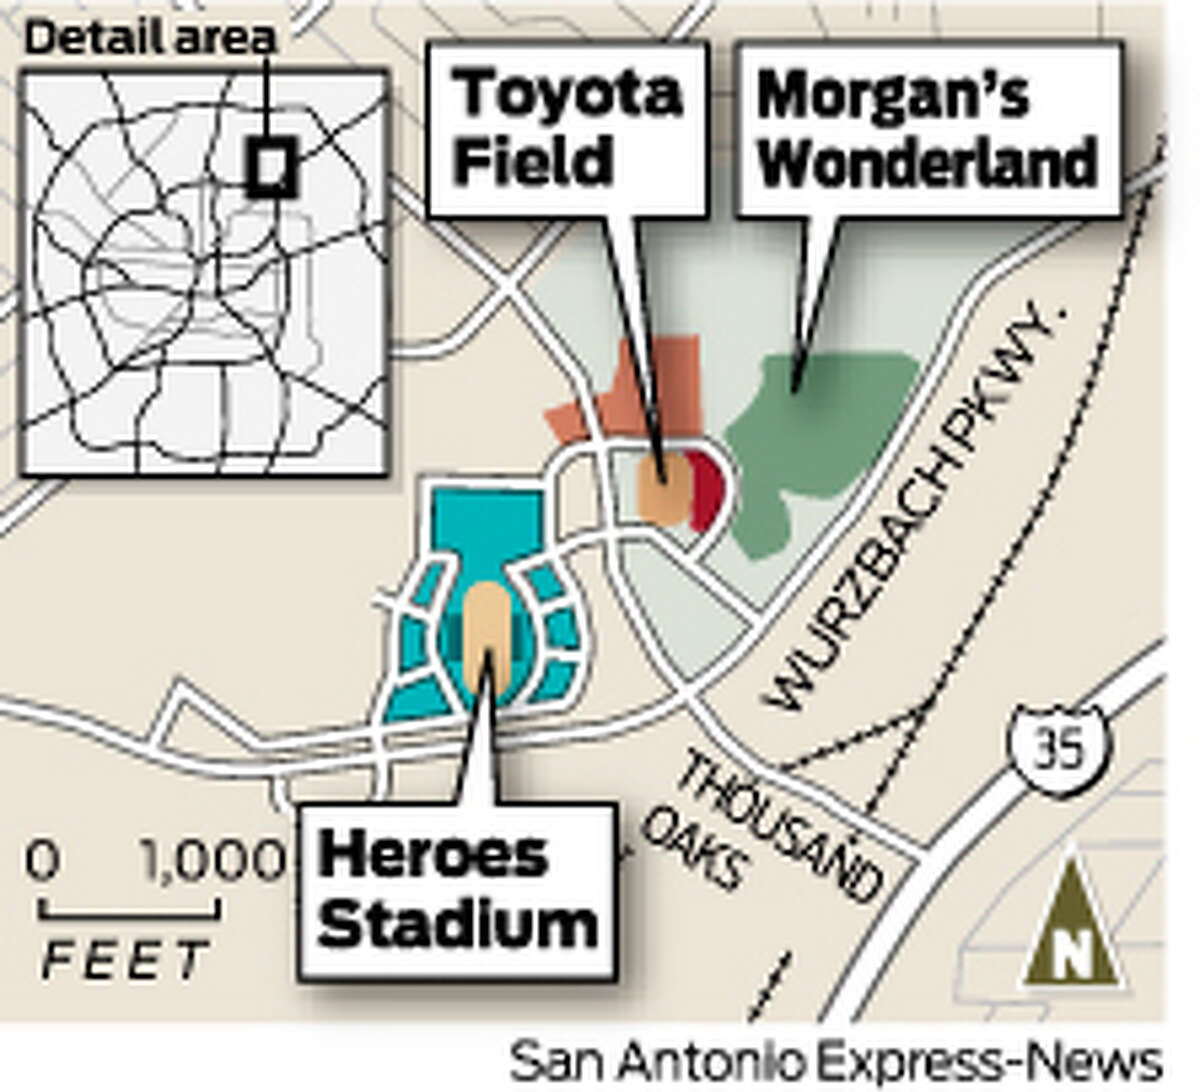 Major League Soccer is seeking a market that can build a stadium downtown. Toyota Field in San Antonio is approximately 15 miles northeast of downtown San Antonio.Click through the slideshow to see reasons San Antonio could get or may not get another soccer team.